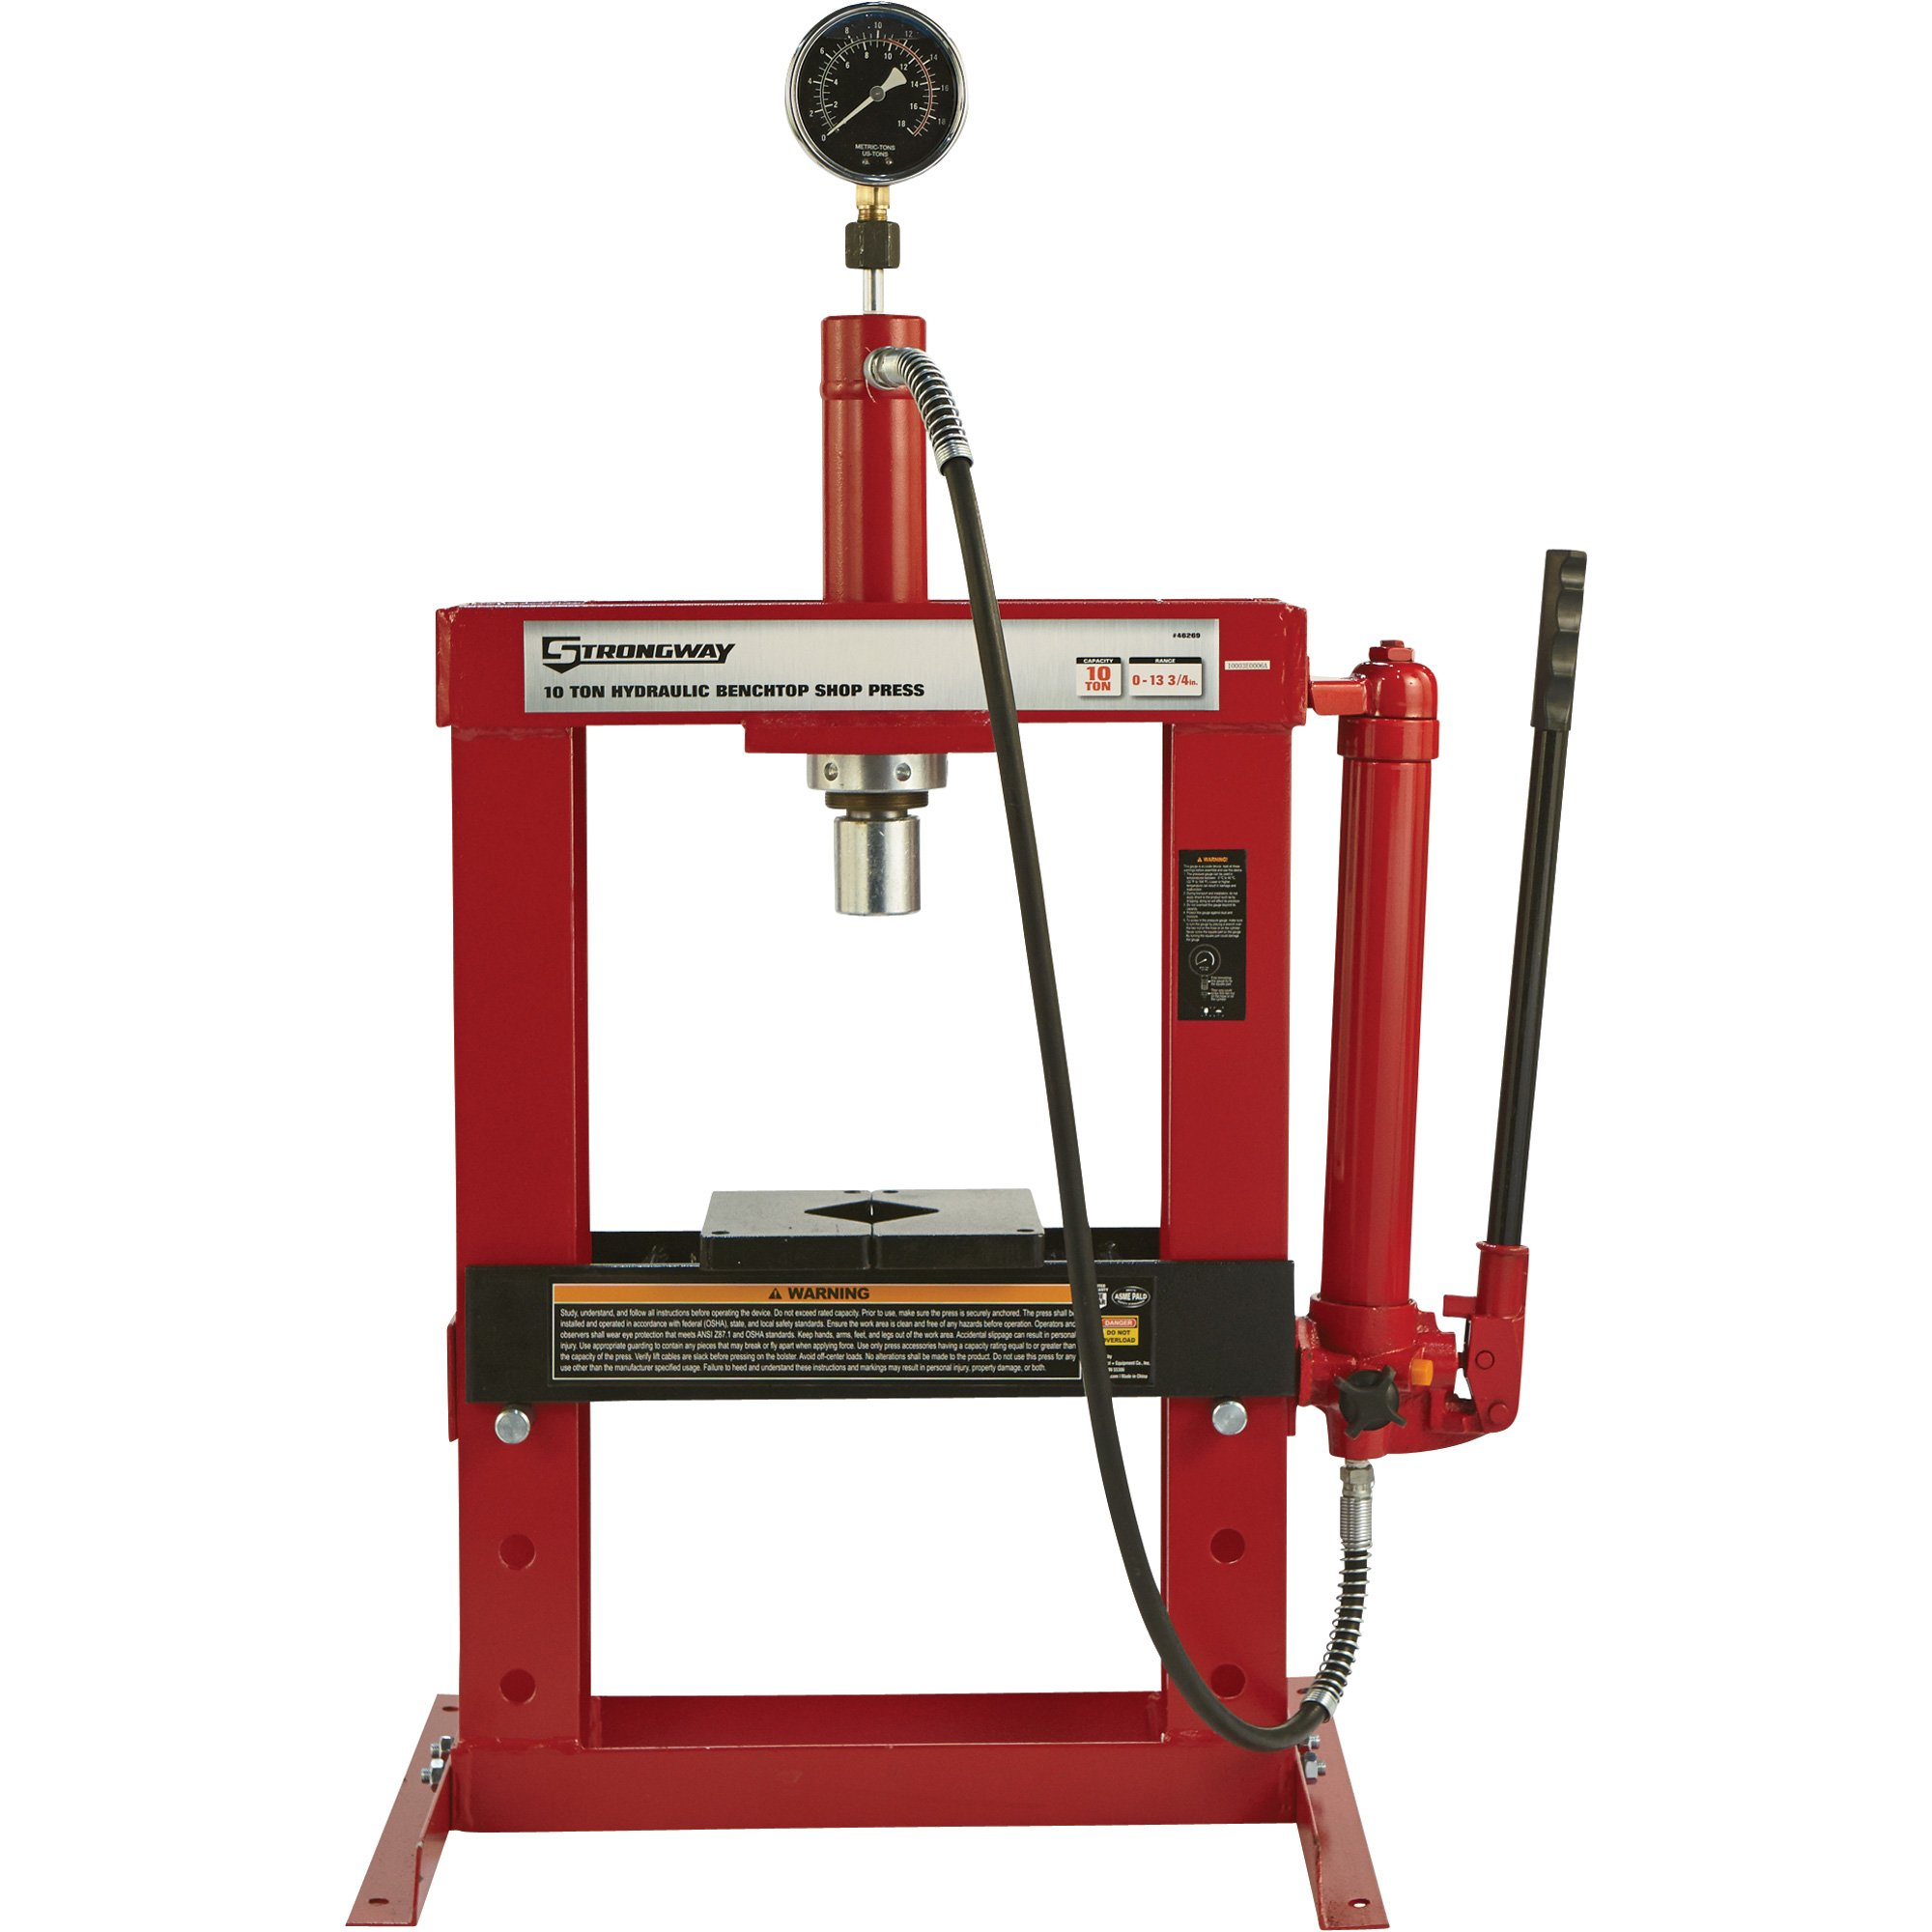 Strongway Hydraulic Shop Press with Gauge - 10-Ton Capacity by Strongway (Image #1)